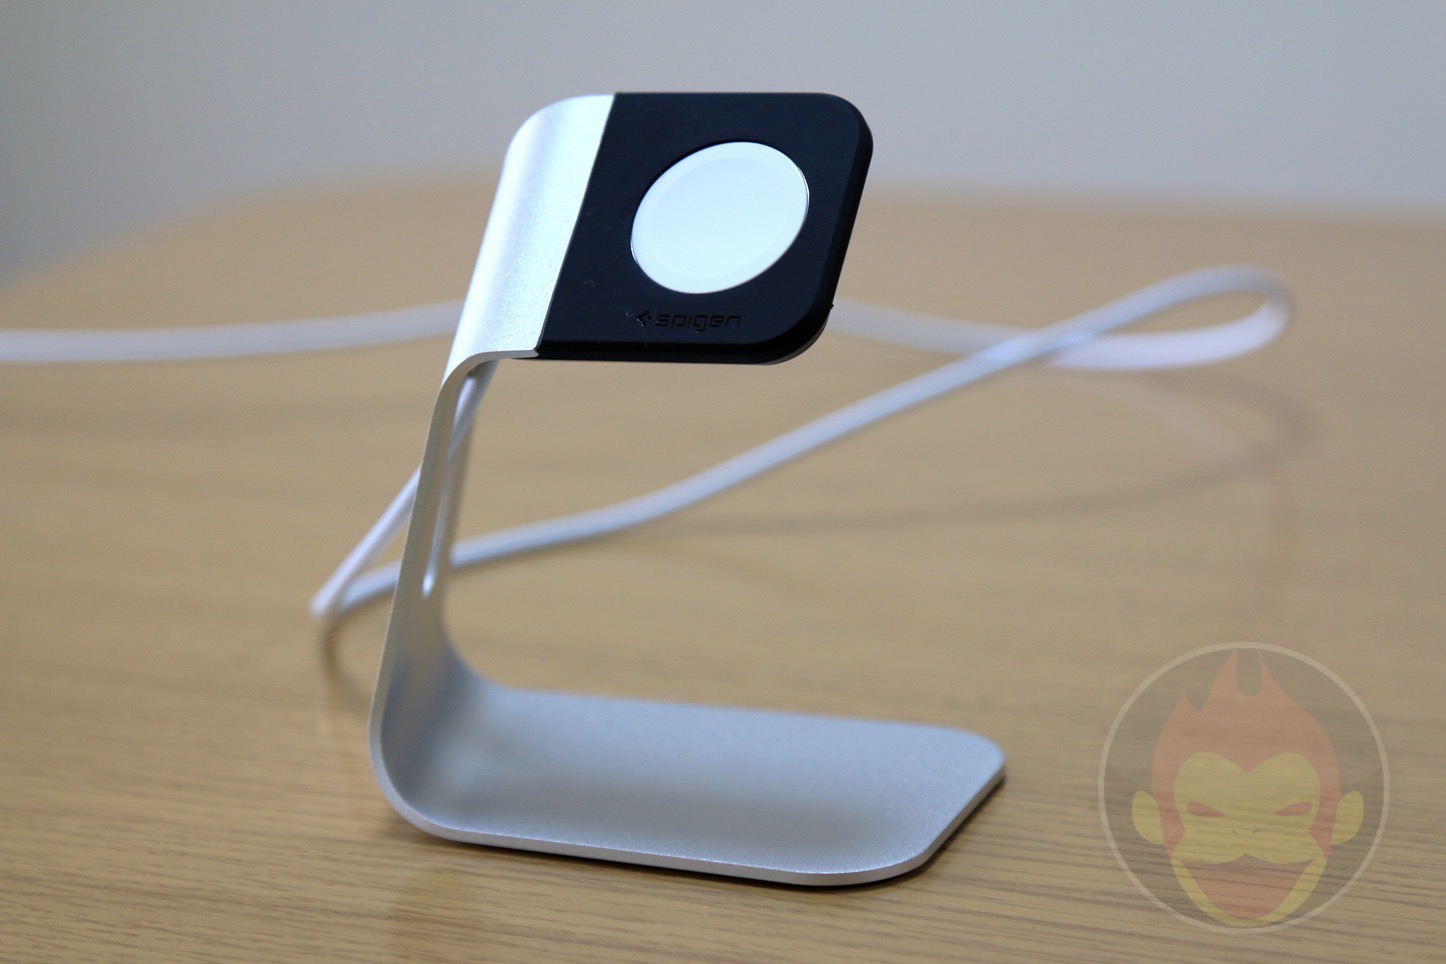 Spigen-Apple-Watch-Stand-13.JPG